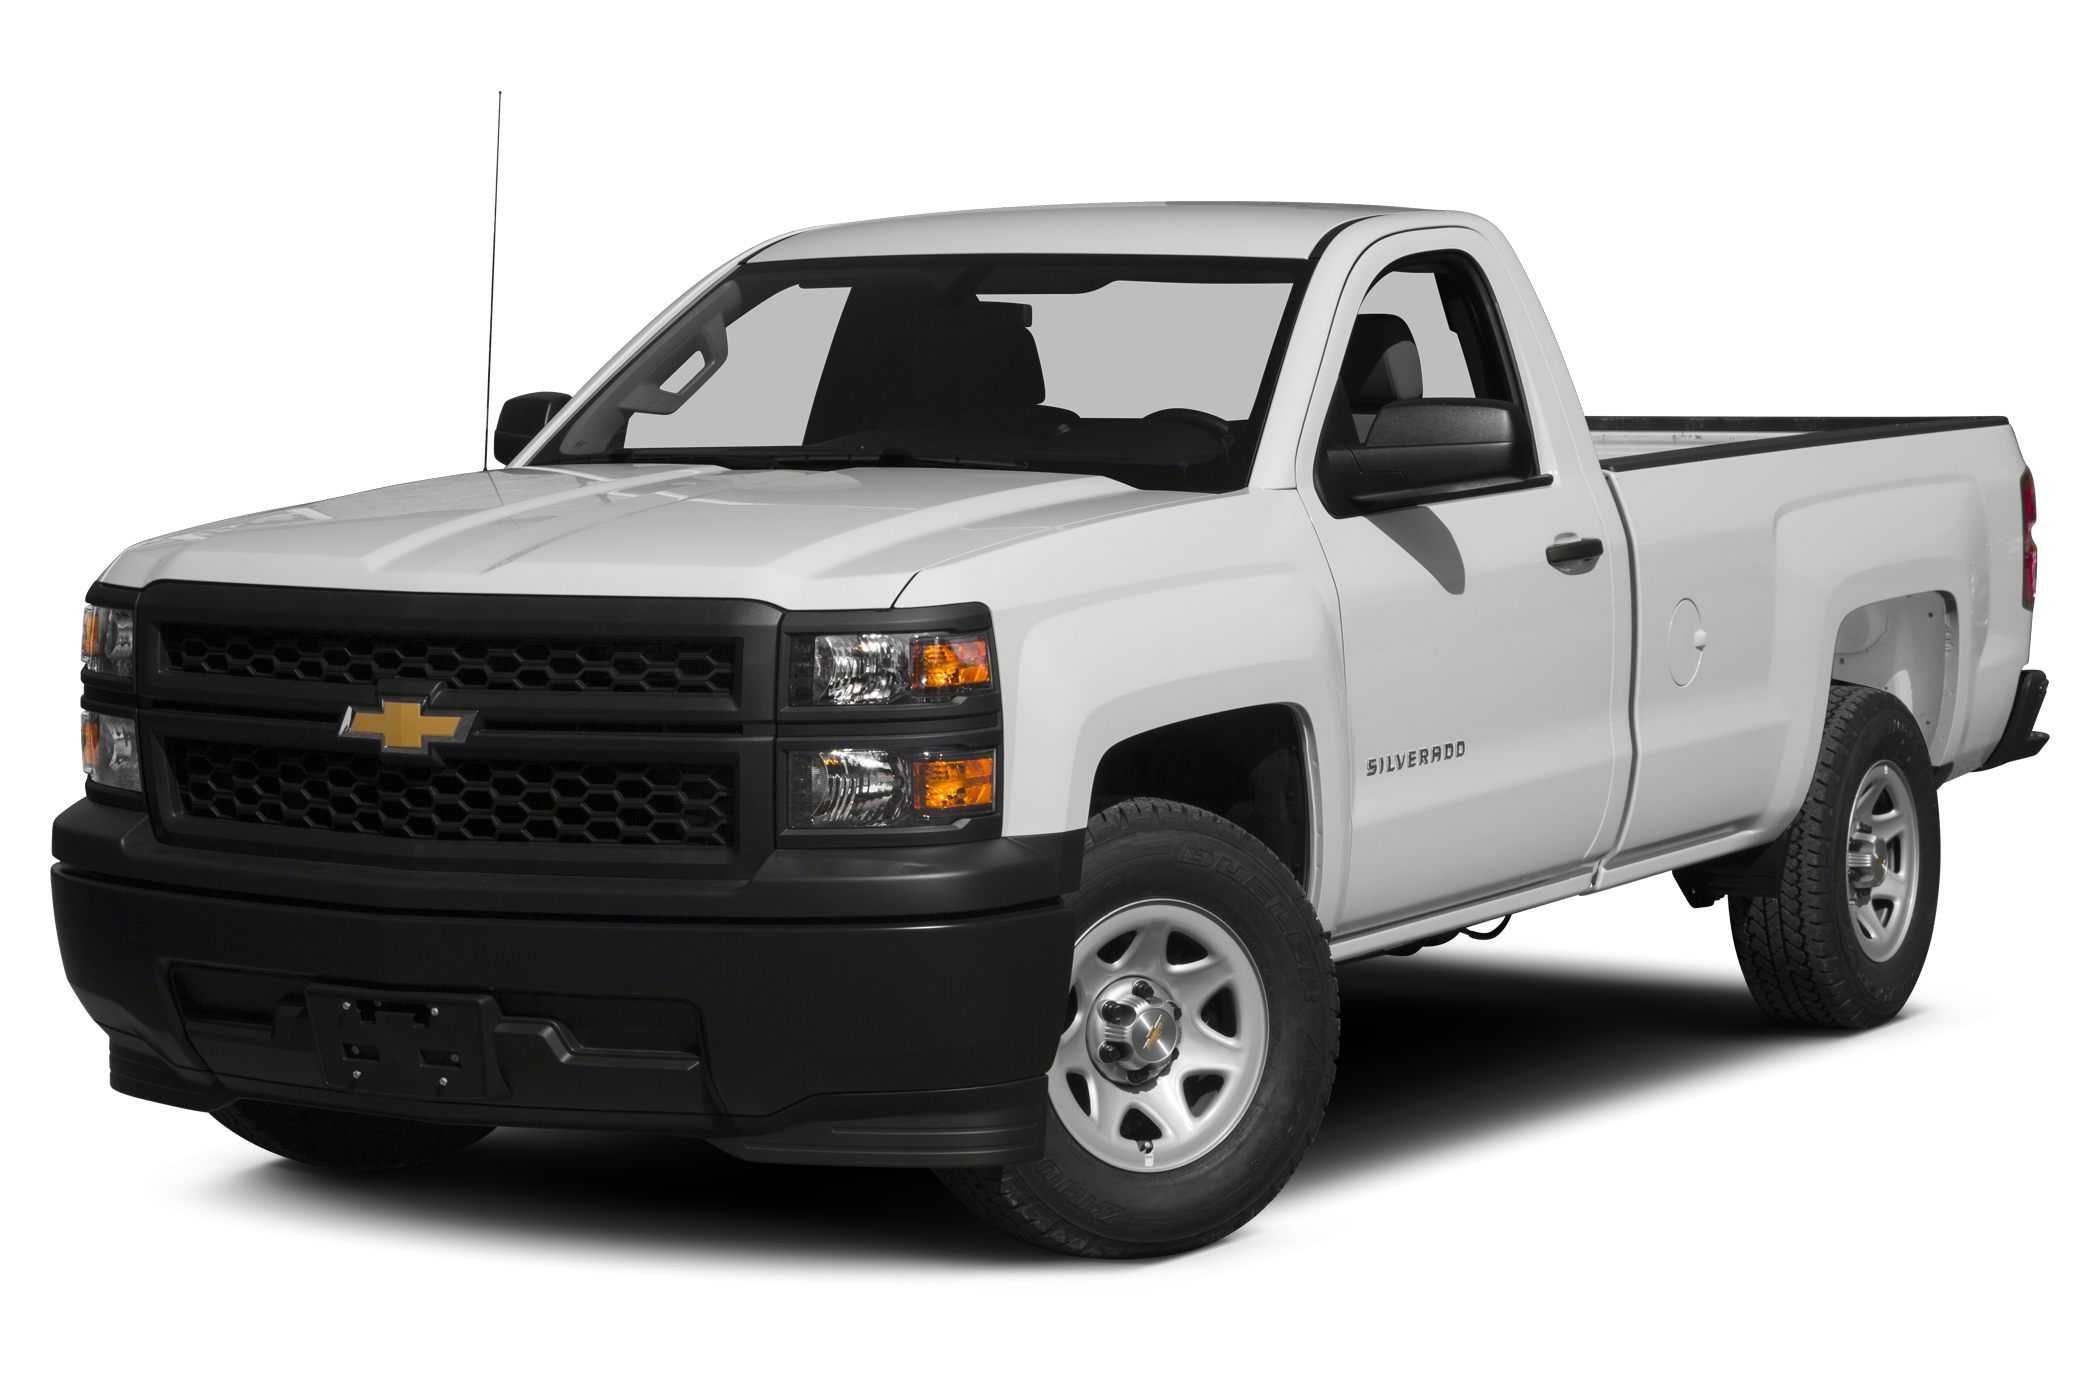 2015 Chevrolet Silverado 1500 1LT Crew Cab Pickup for sale in Keene for $49,595 with 10 miles.